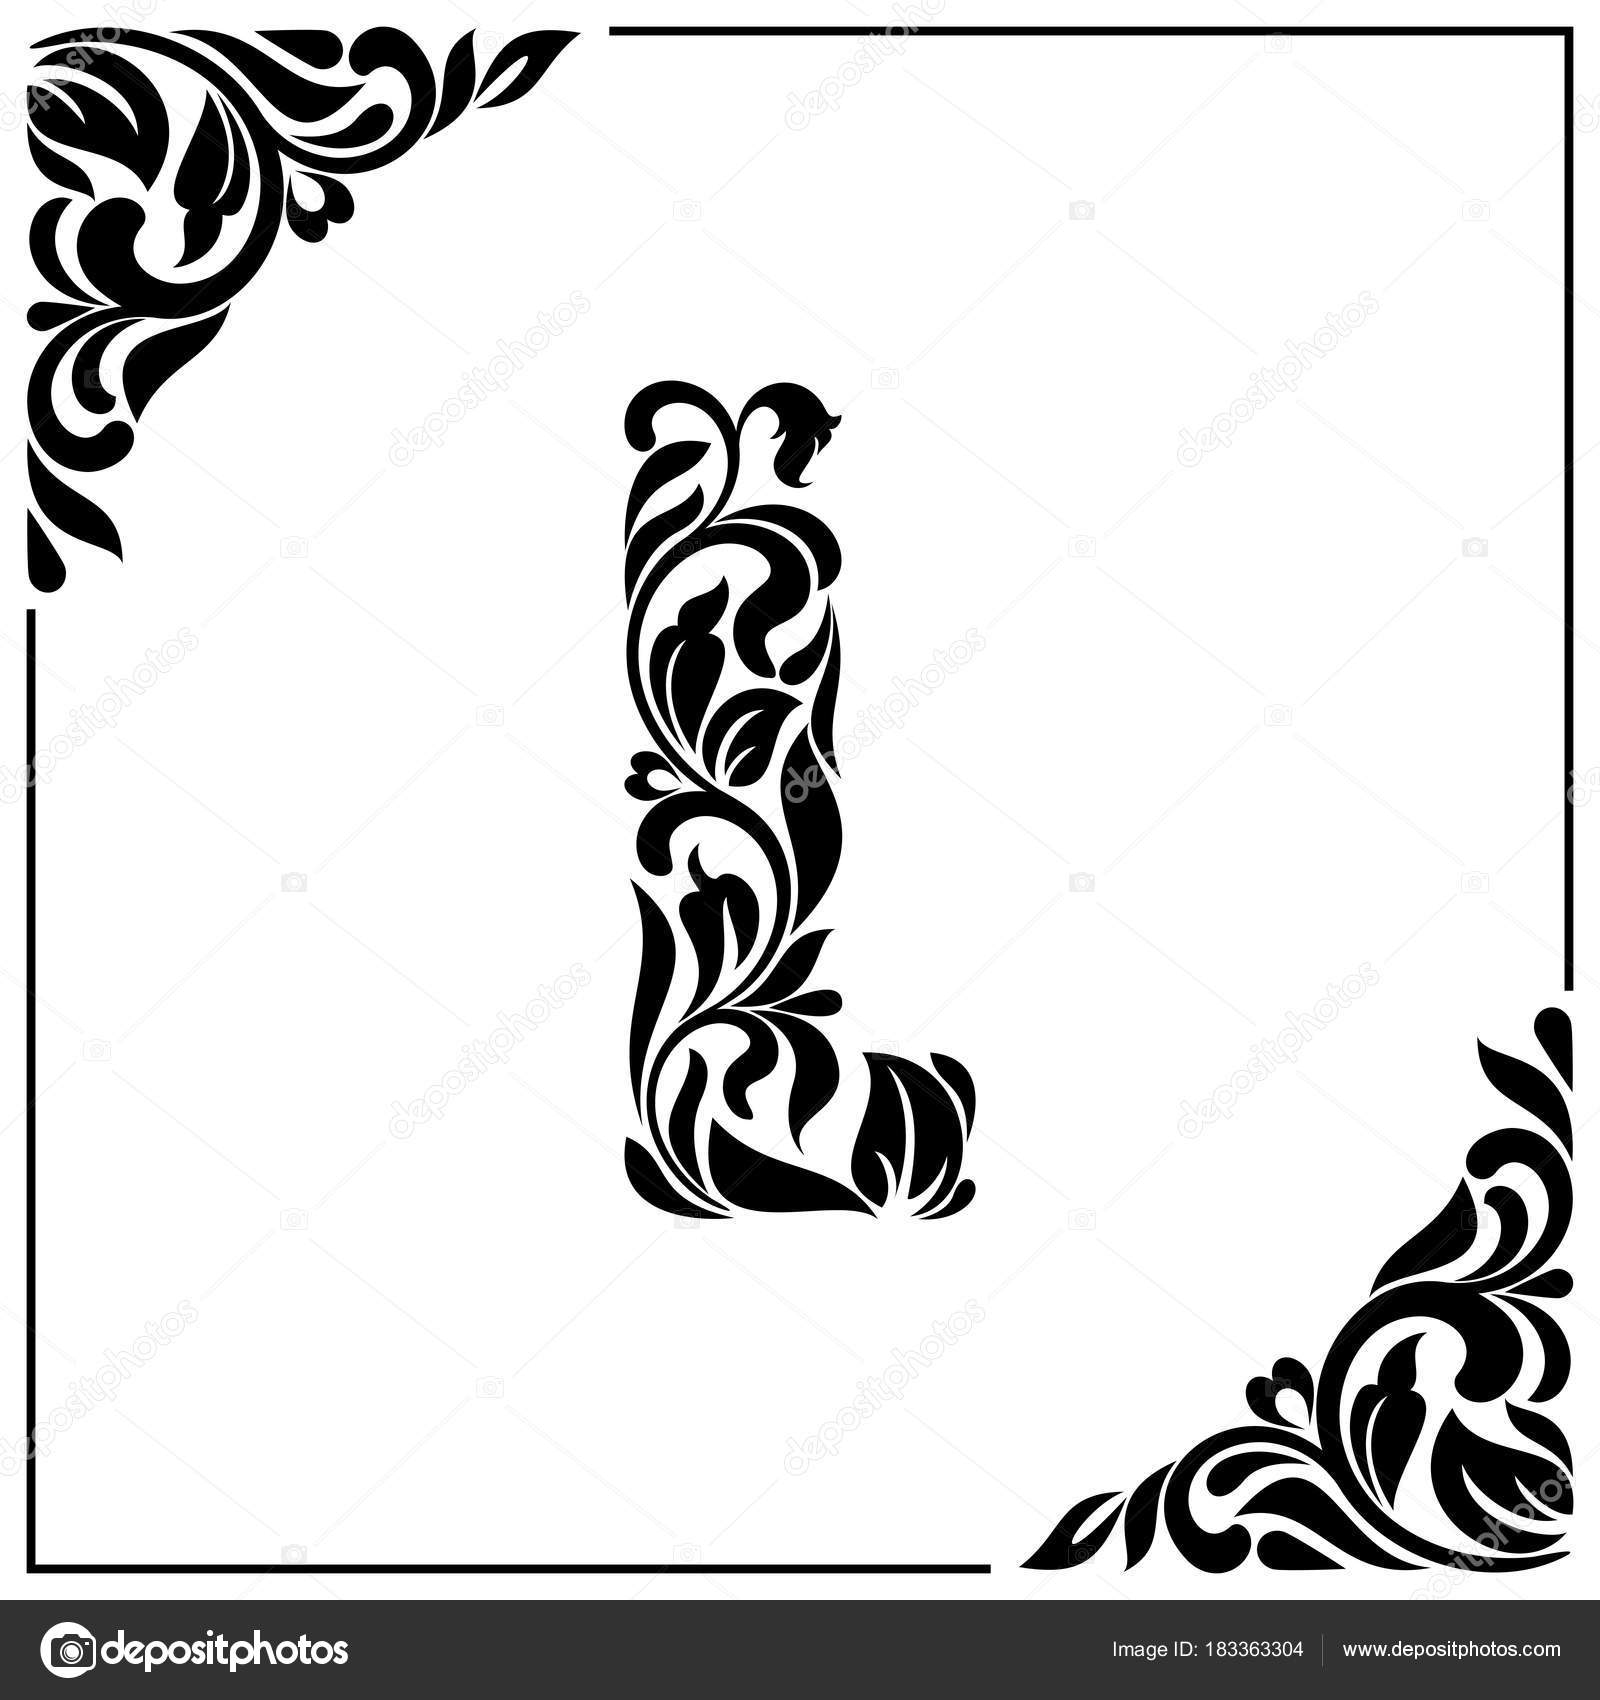 The Letter L Decorative Font With Swirls And Floral Elements Vintage Style Stock